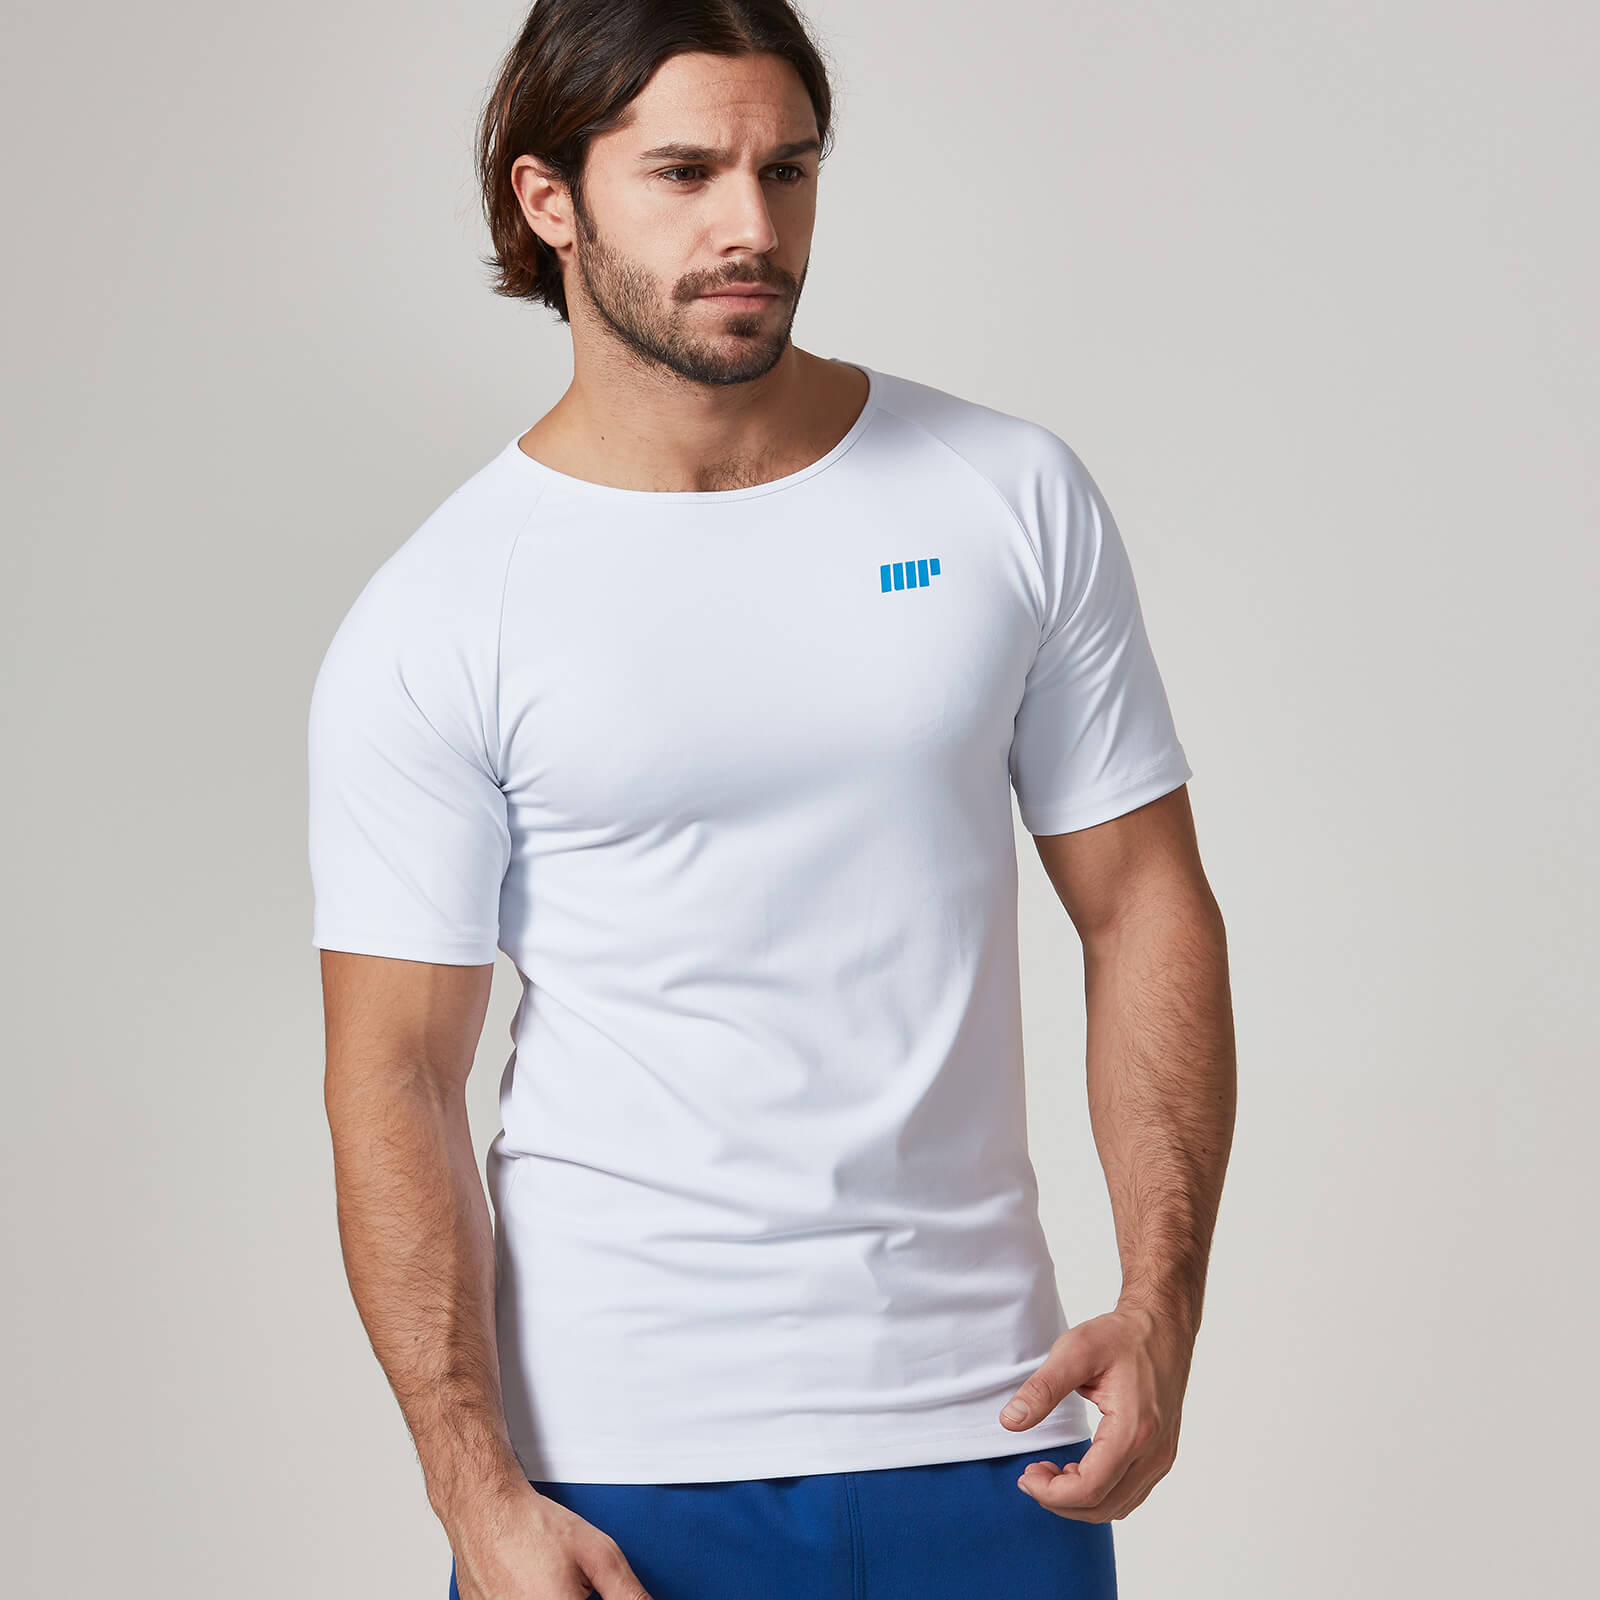 Myprotein Dry Tech T-Shirt - White, XL